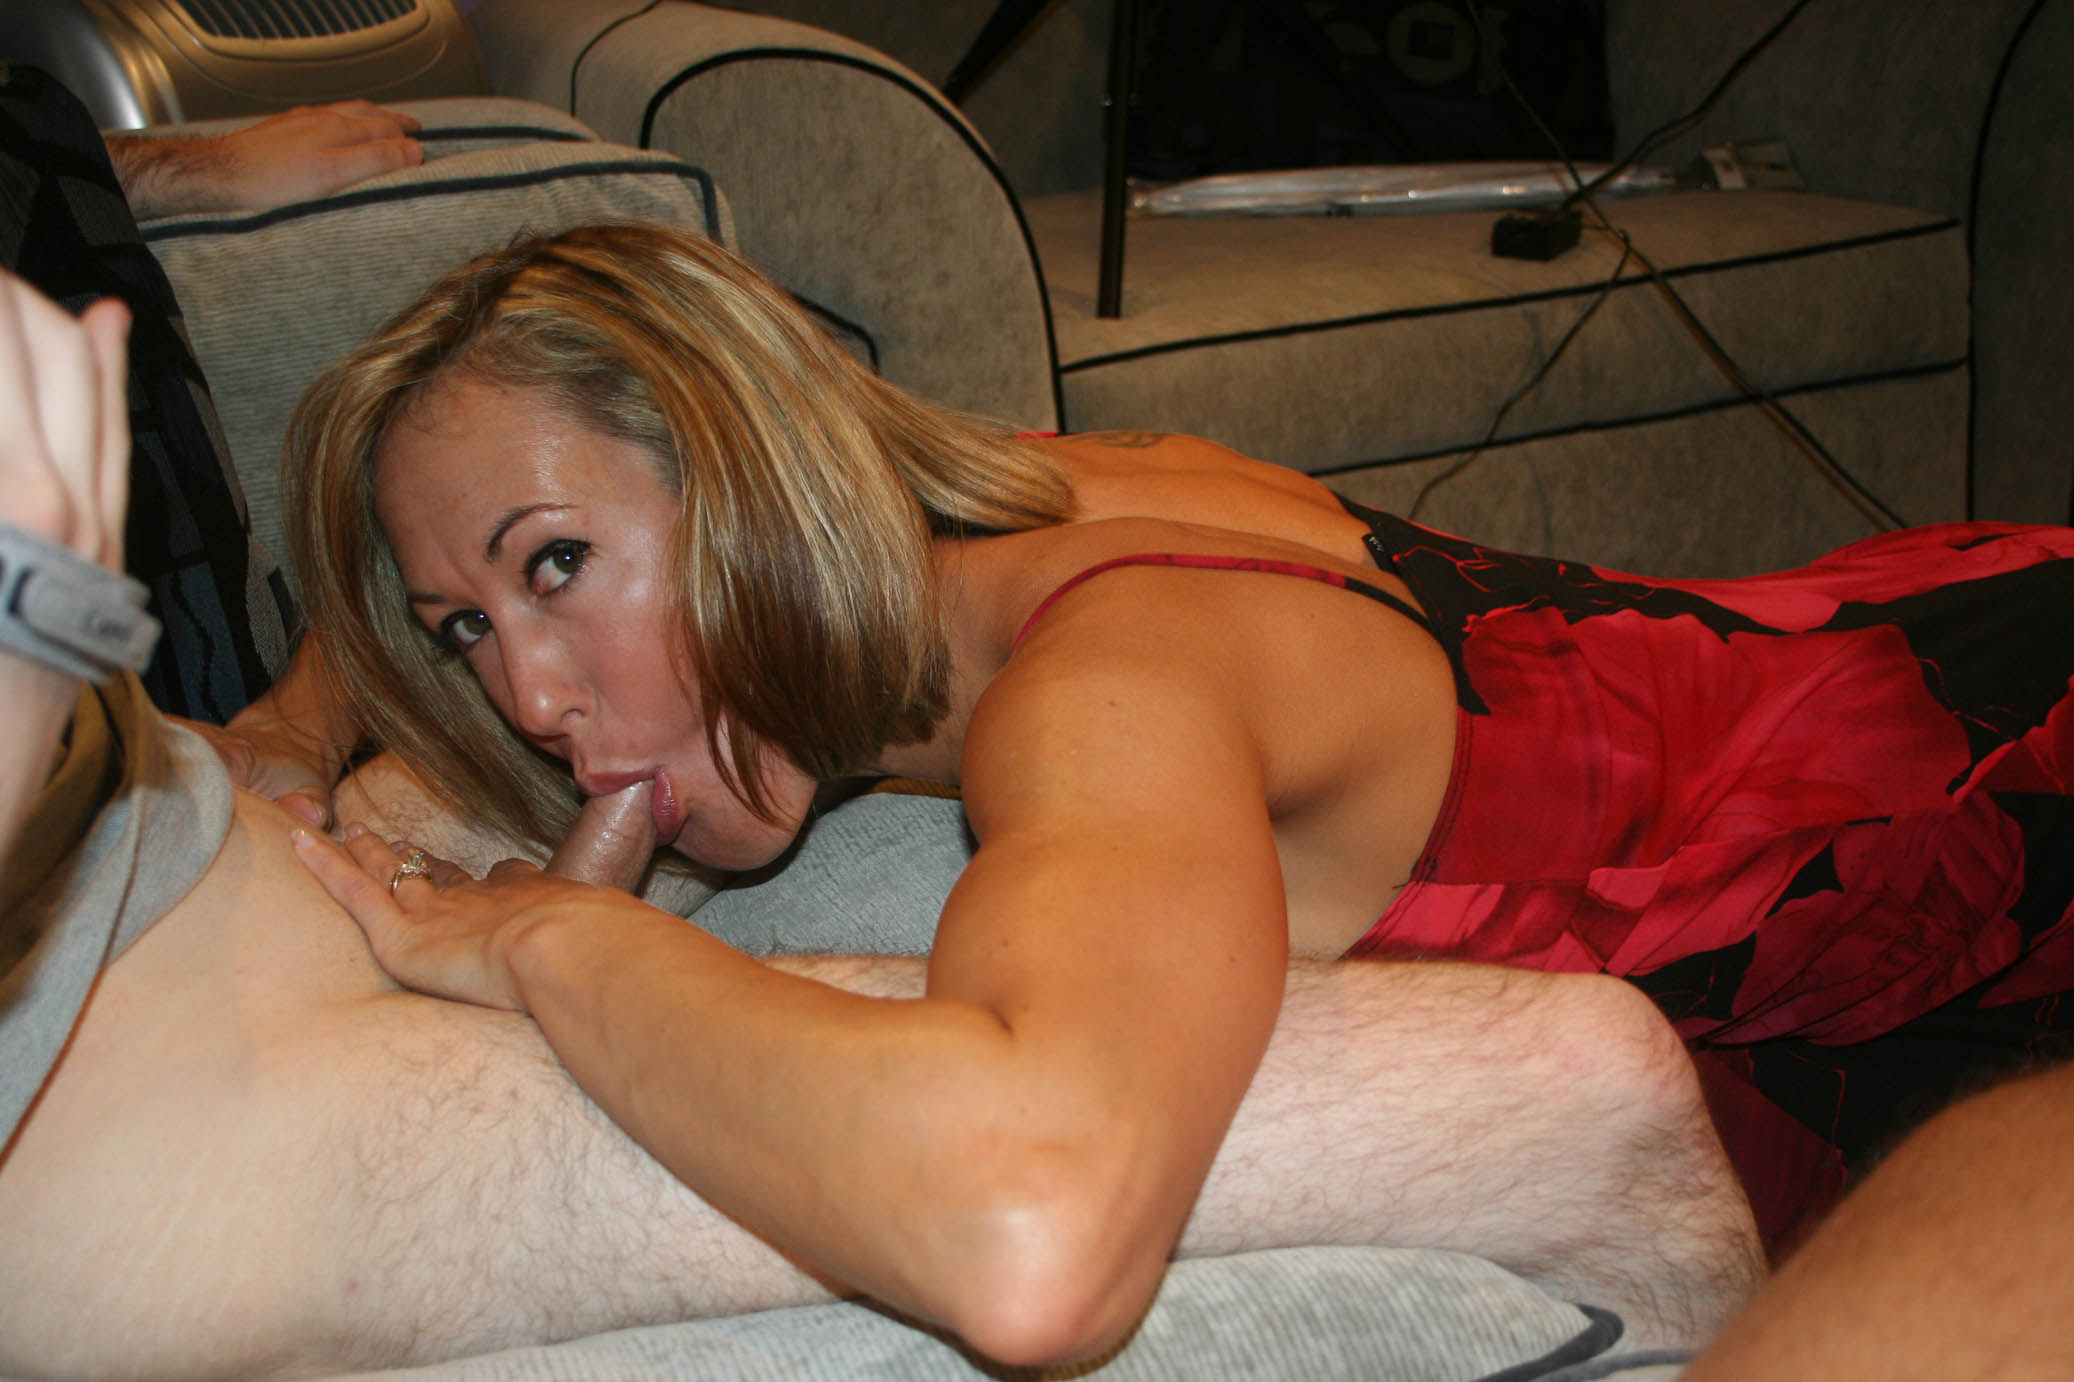 Amateur milf brandi love fucks gold vibrator for hubby